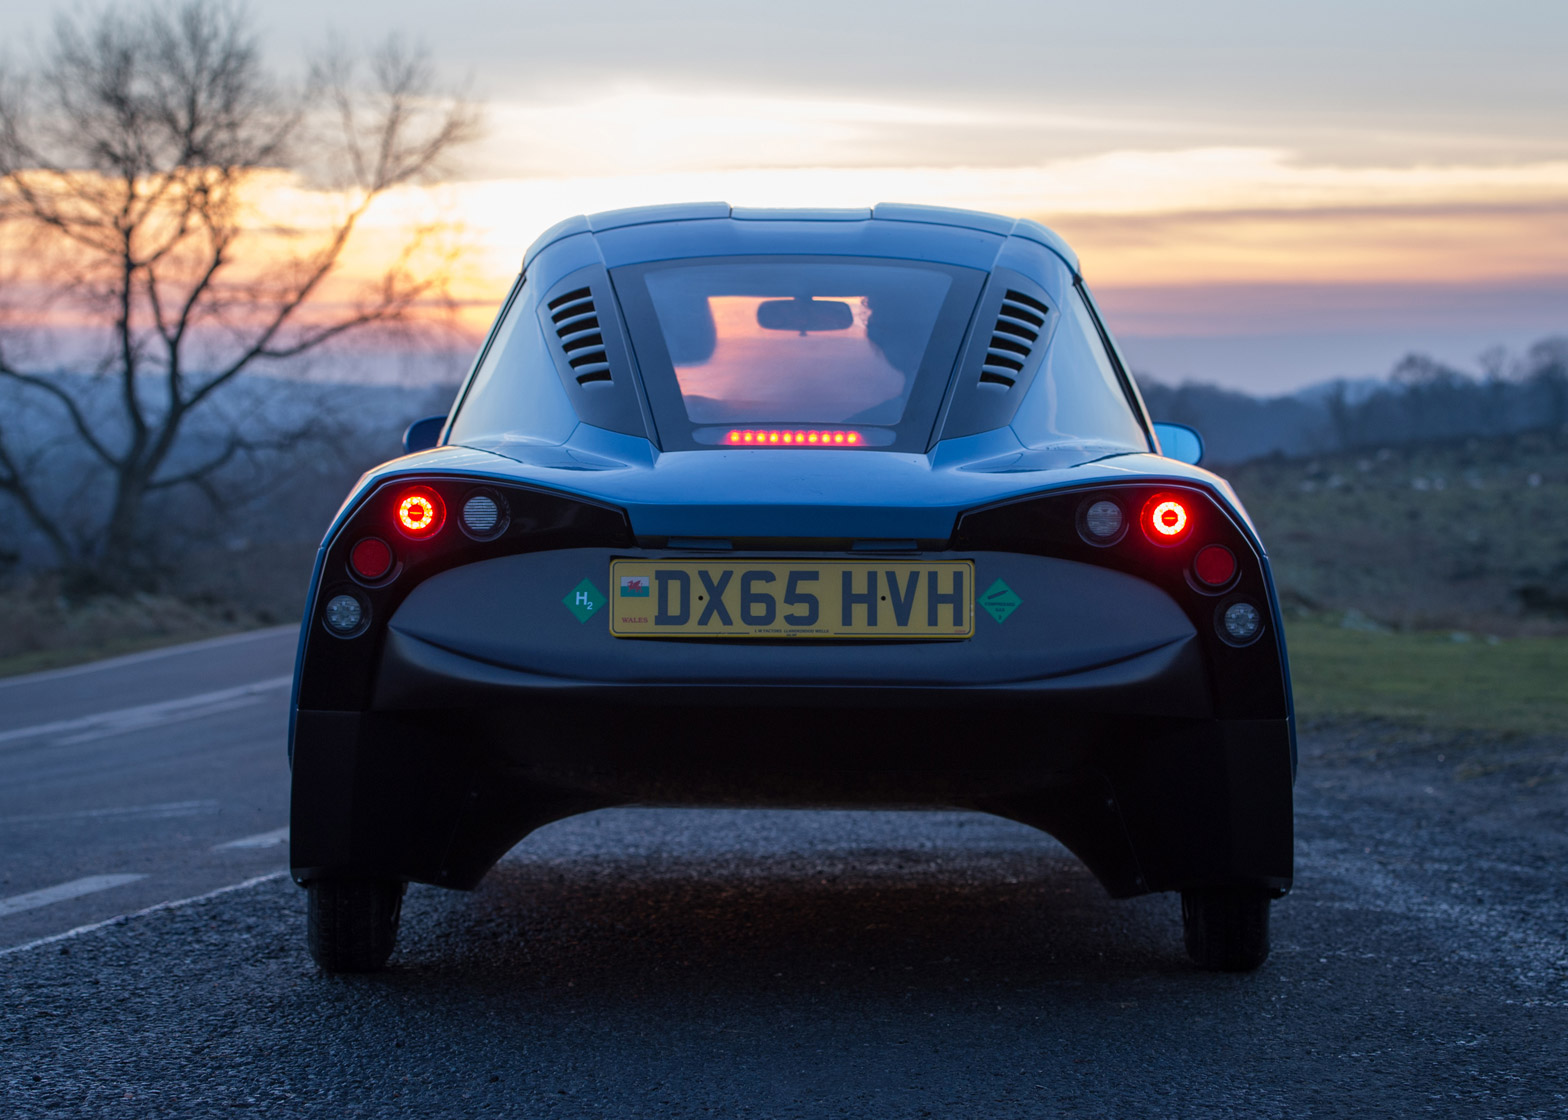 Rasa prototype by Riversimple